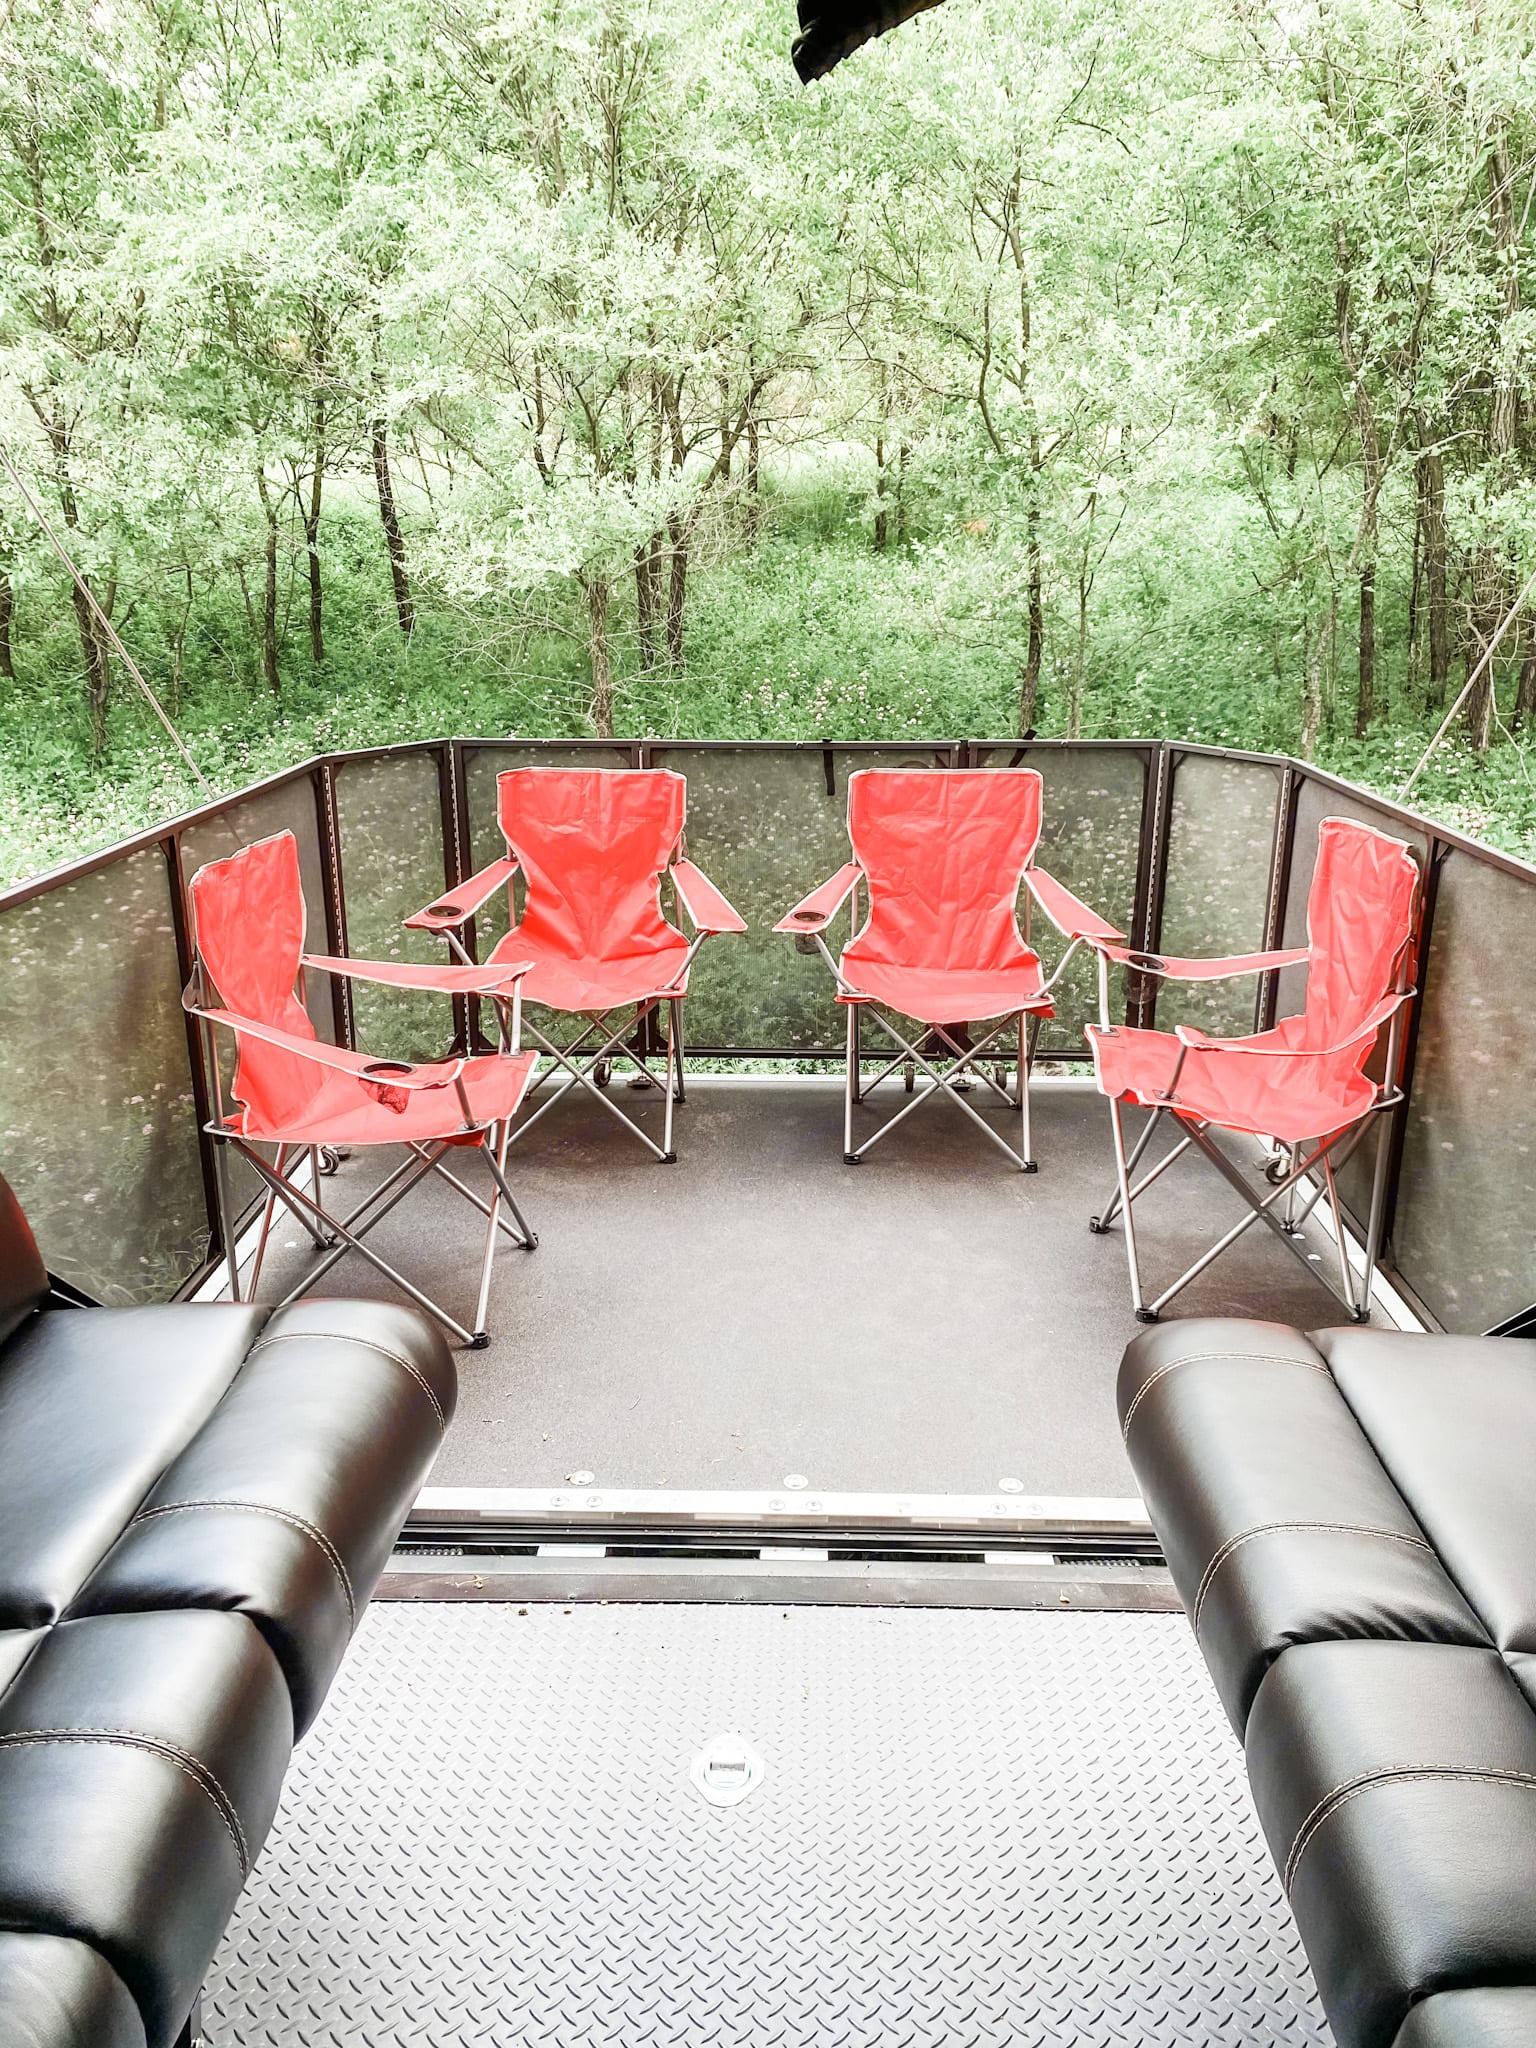 Enjoy the party deck on this toy hauler! Rental includes 6 folding chairs. Party deck 1,500 lbs.. Forest River Other 2020